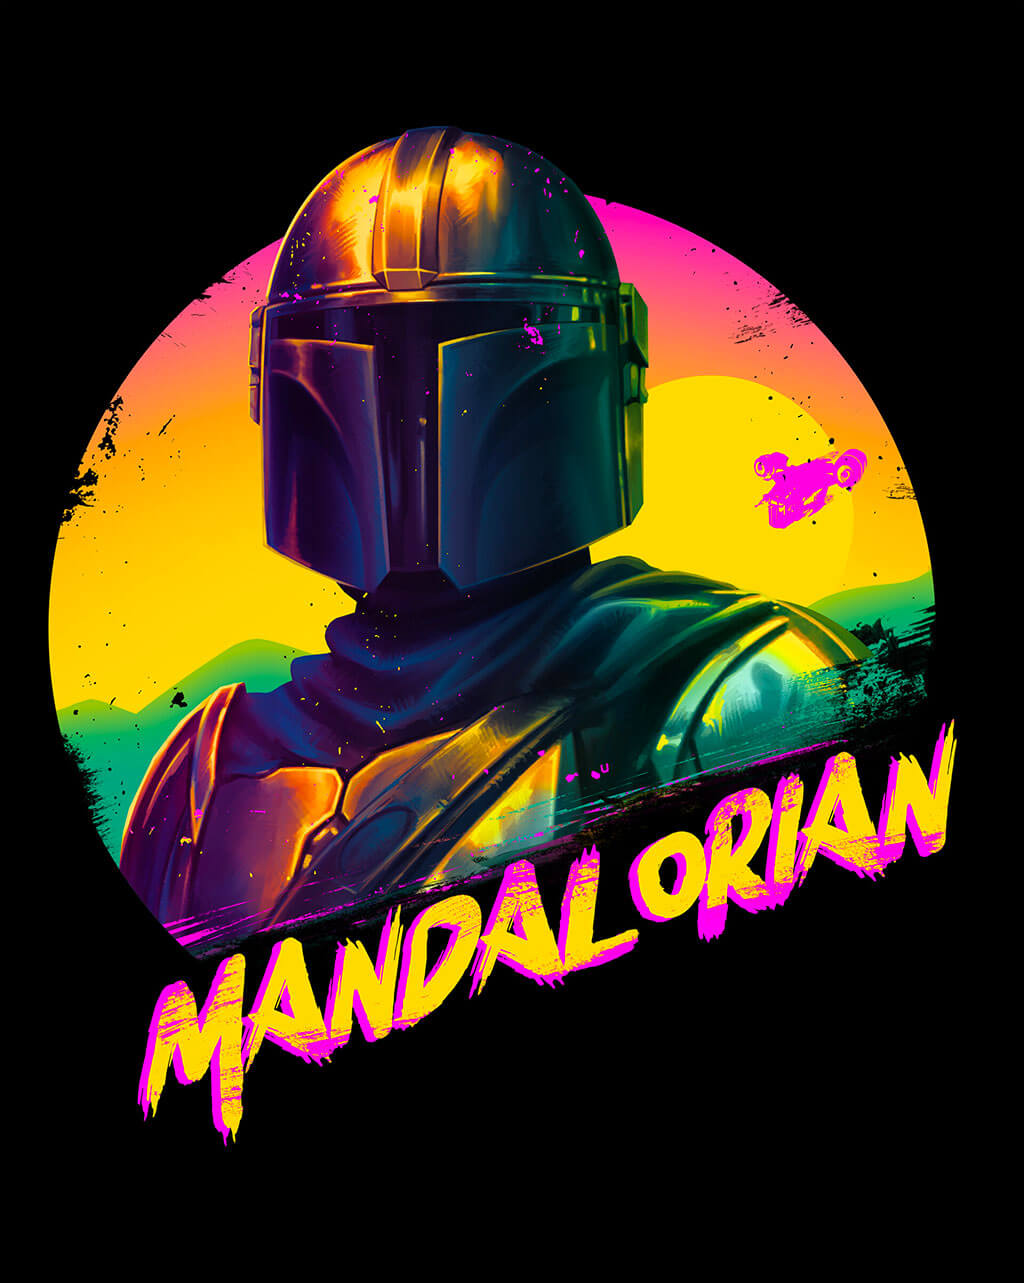 Mandalorian Fan Art by Janine Berg